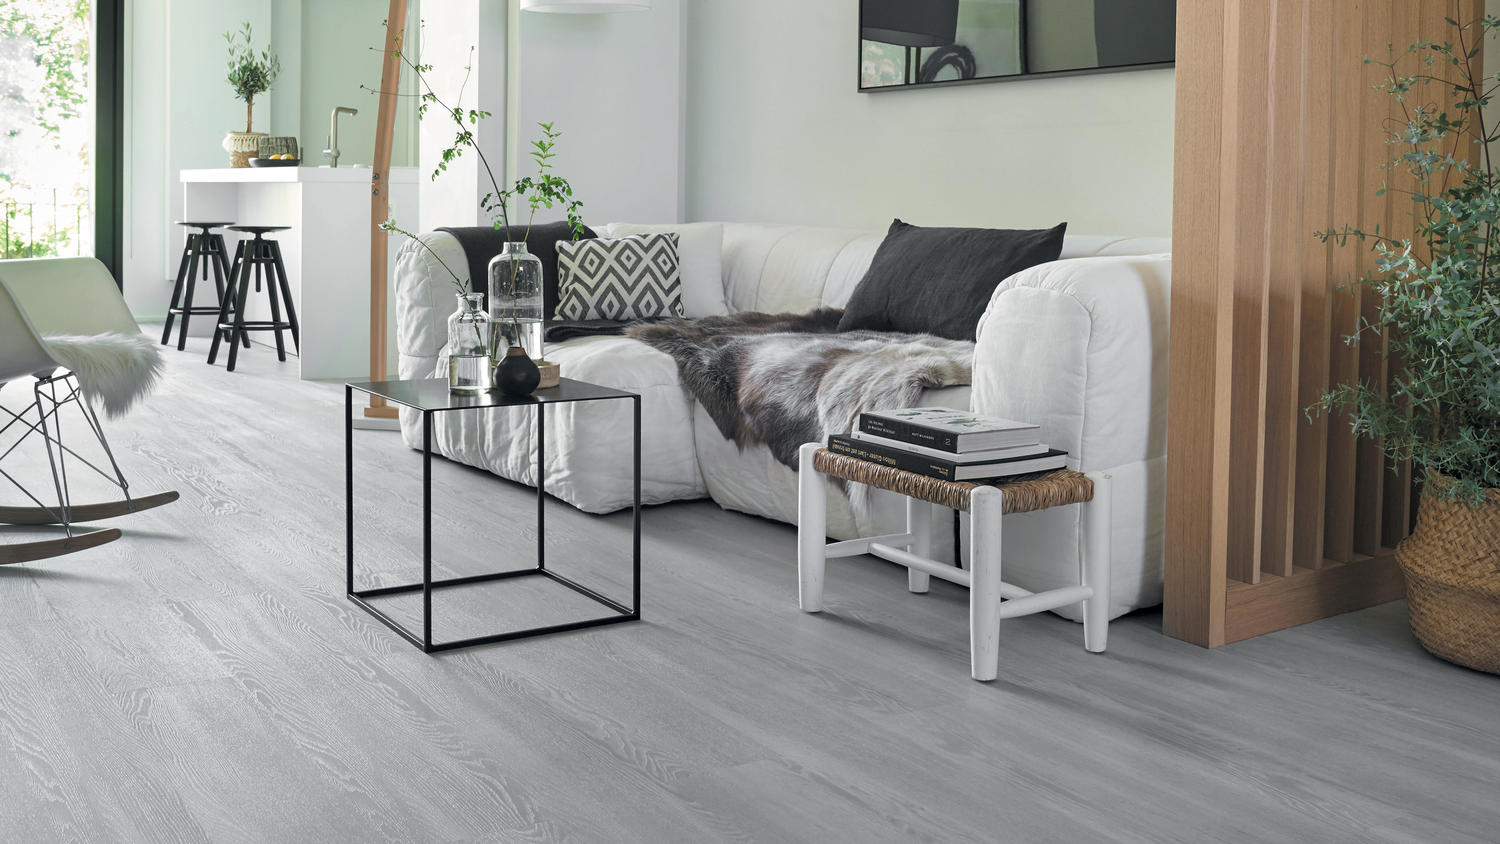 why choose your vinyl home tarkett floors for flooring edwards floor carpet